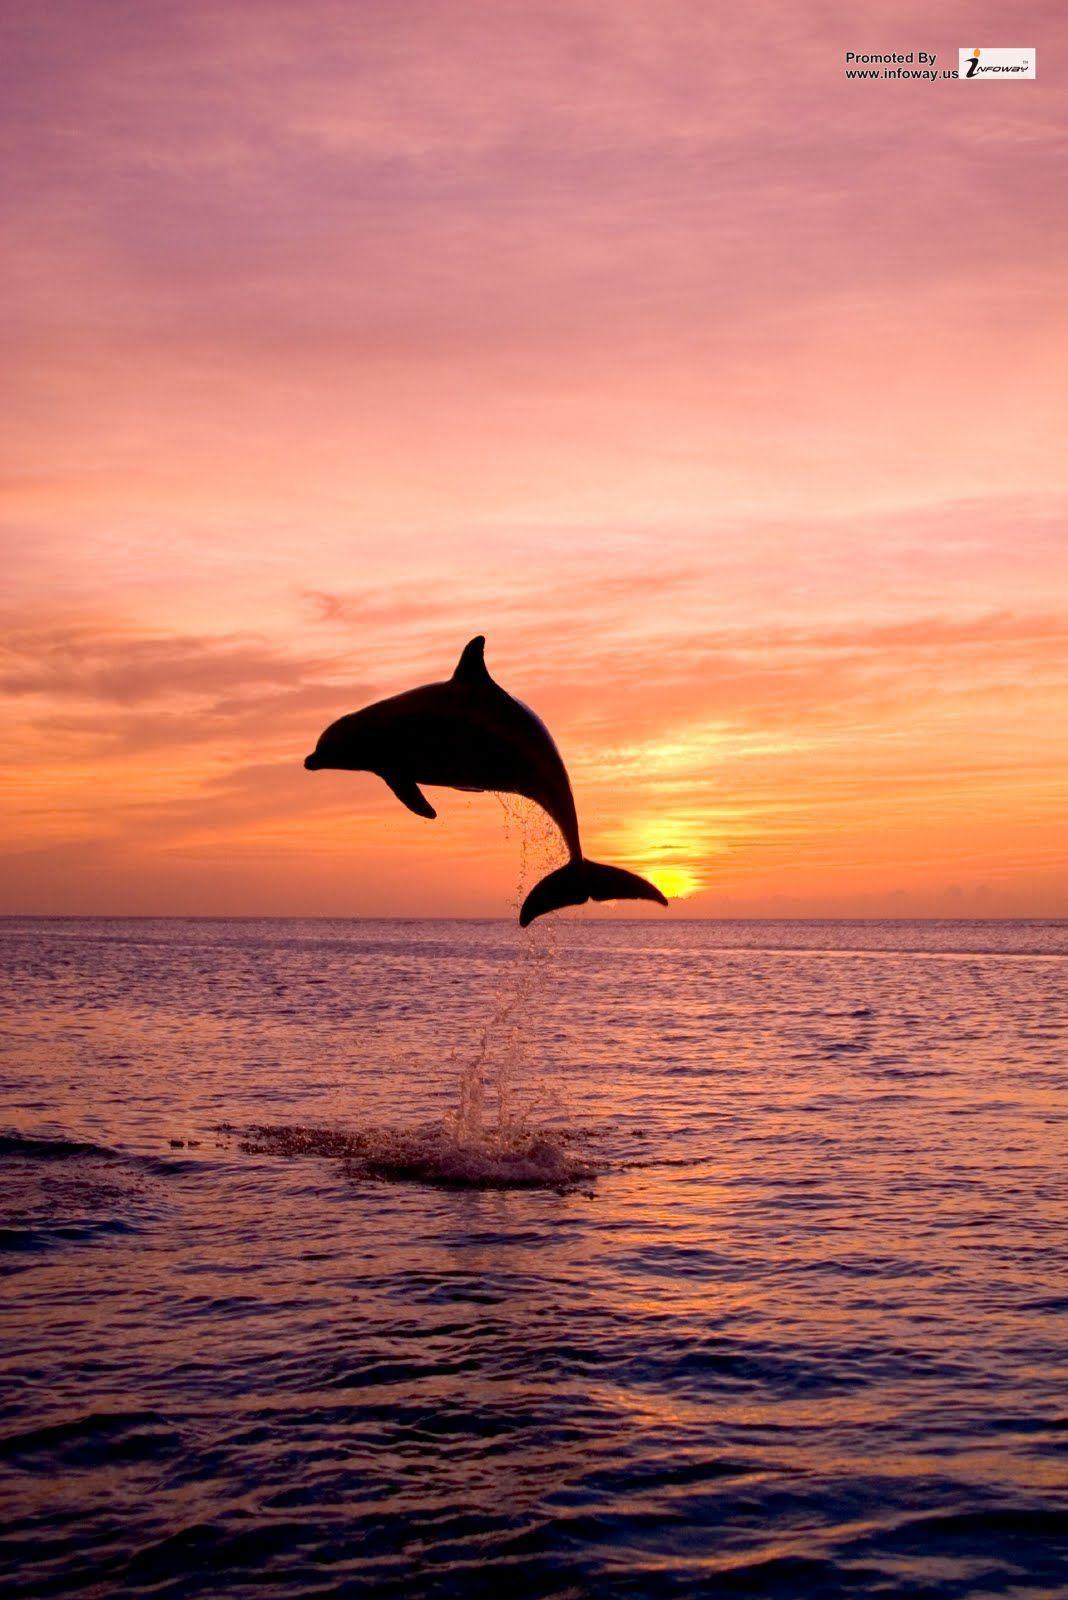 dolphins jumping in the sunset hd wallpaper